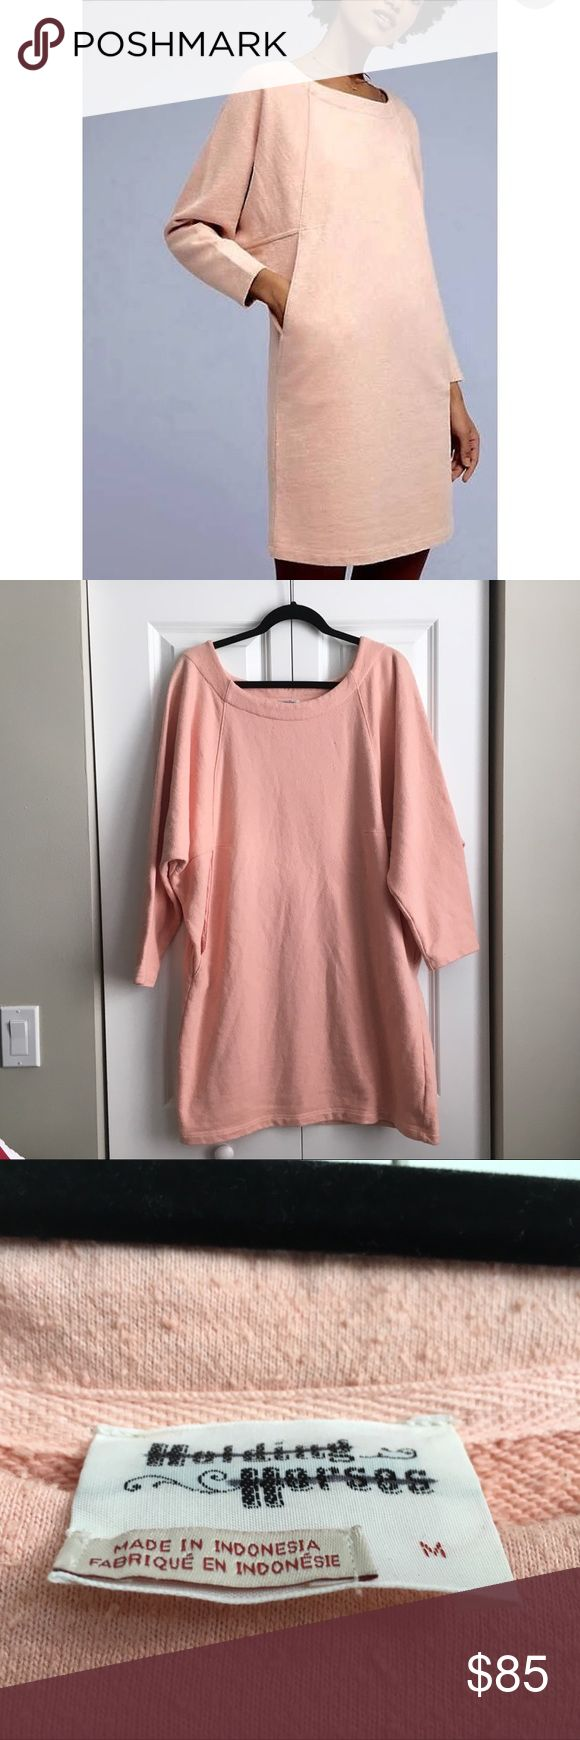 """Anthro Holding Horses Coconut Sweatshirt Dress- M Anthropologie Holding Horses Cocoon Sweatshirt Dress!  Brand new without tags.  Never worn!  Would look great with tights and boots!  Size Medium Pink/Salmon Color Sweatshirt weight/material Textured. 80% Cotton, 13% Poly, 7% Linen. Dolman Sleeves Oversized top that goes into cocoon style skirt. From a smoke free home. Cocoon silhouette  Side pockets  Pullover styling  Machine wash  Imported Measures 28"""" across, 36"""" in length and measures 22""""…"""